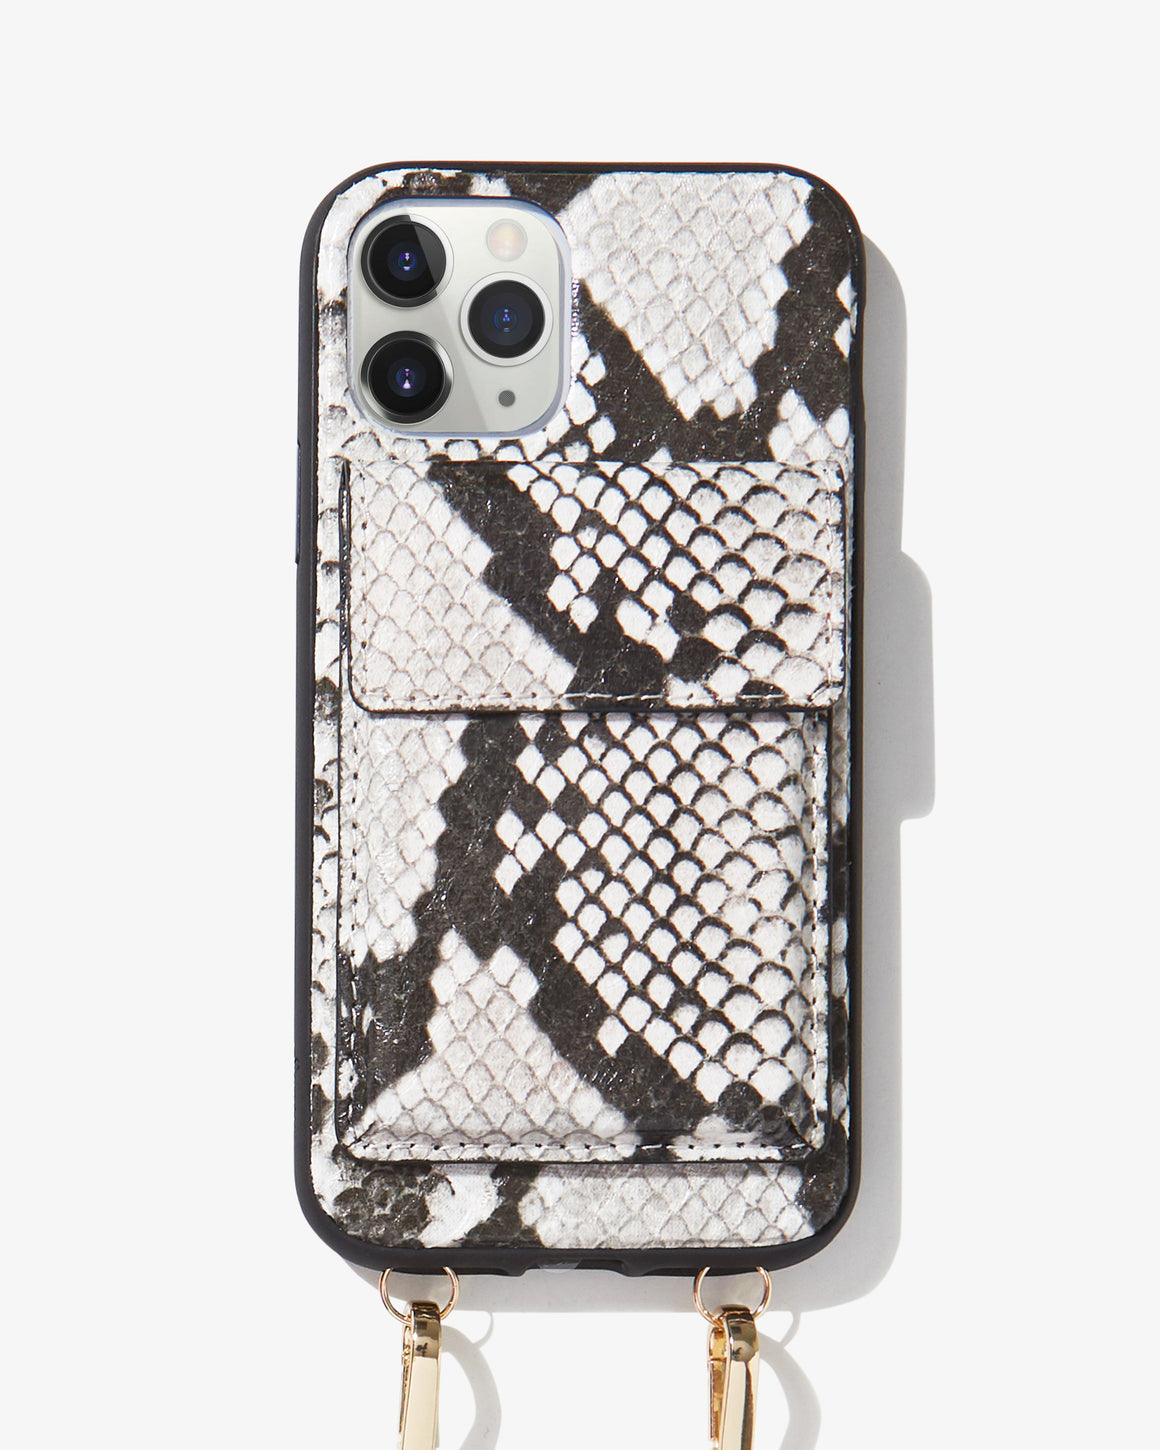 Tres Case Crossbody - Gray Python, iPhone 11 Pro Max / XS Max